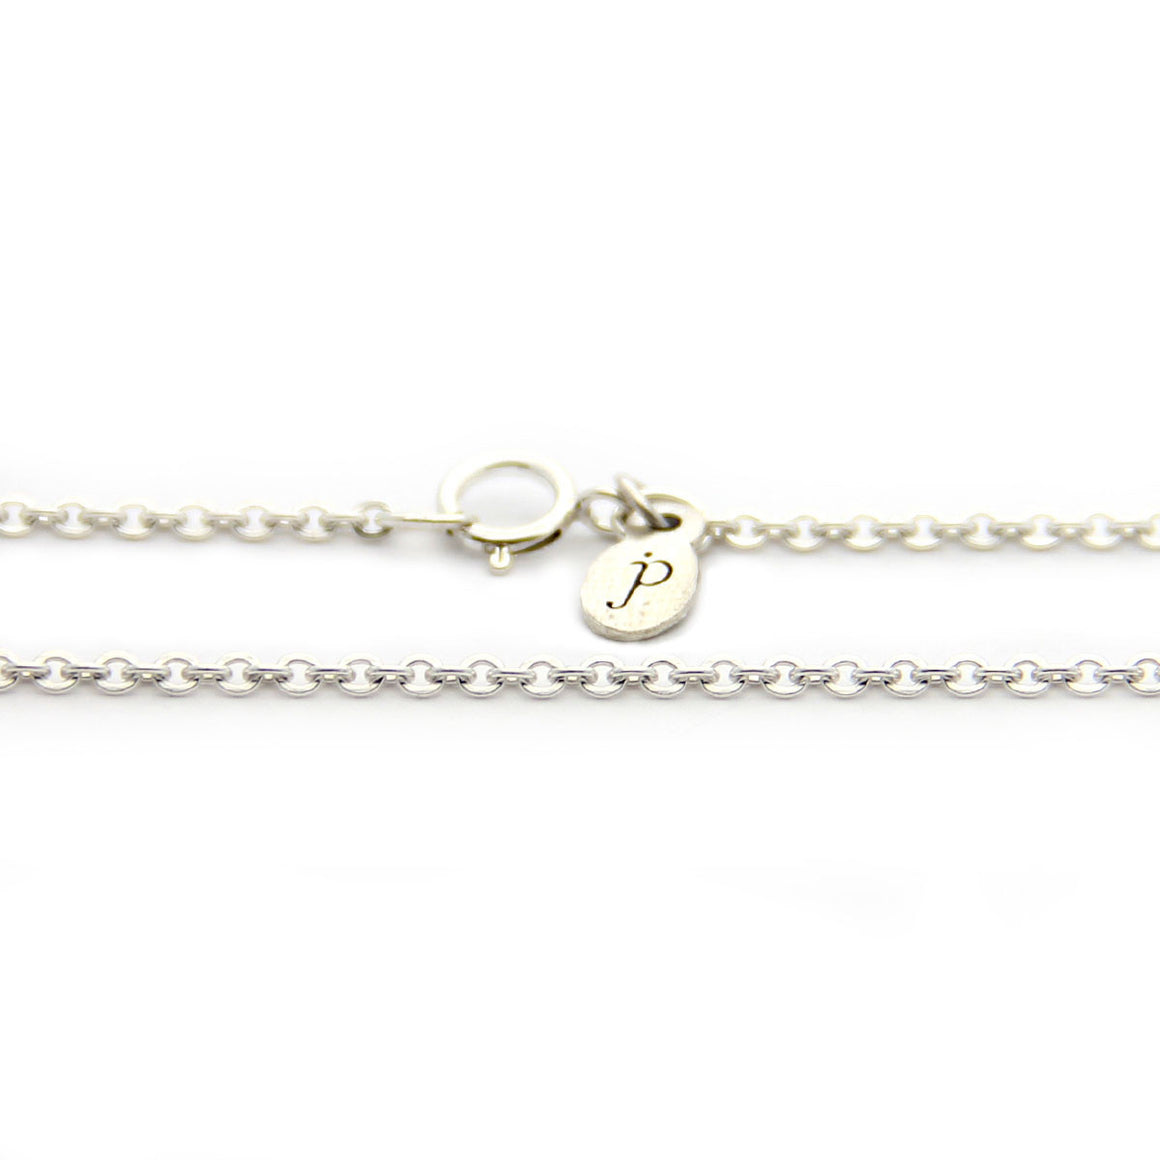 sterling silver cable chain necklace length options, add on chain option, jenny present®